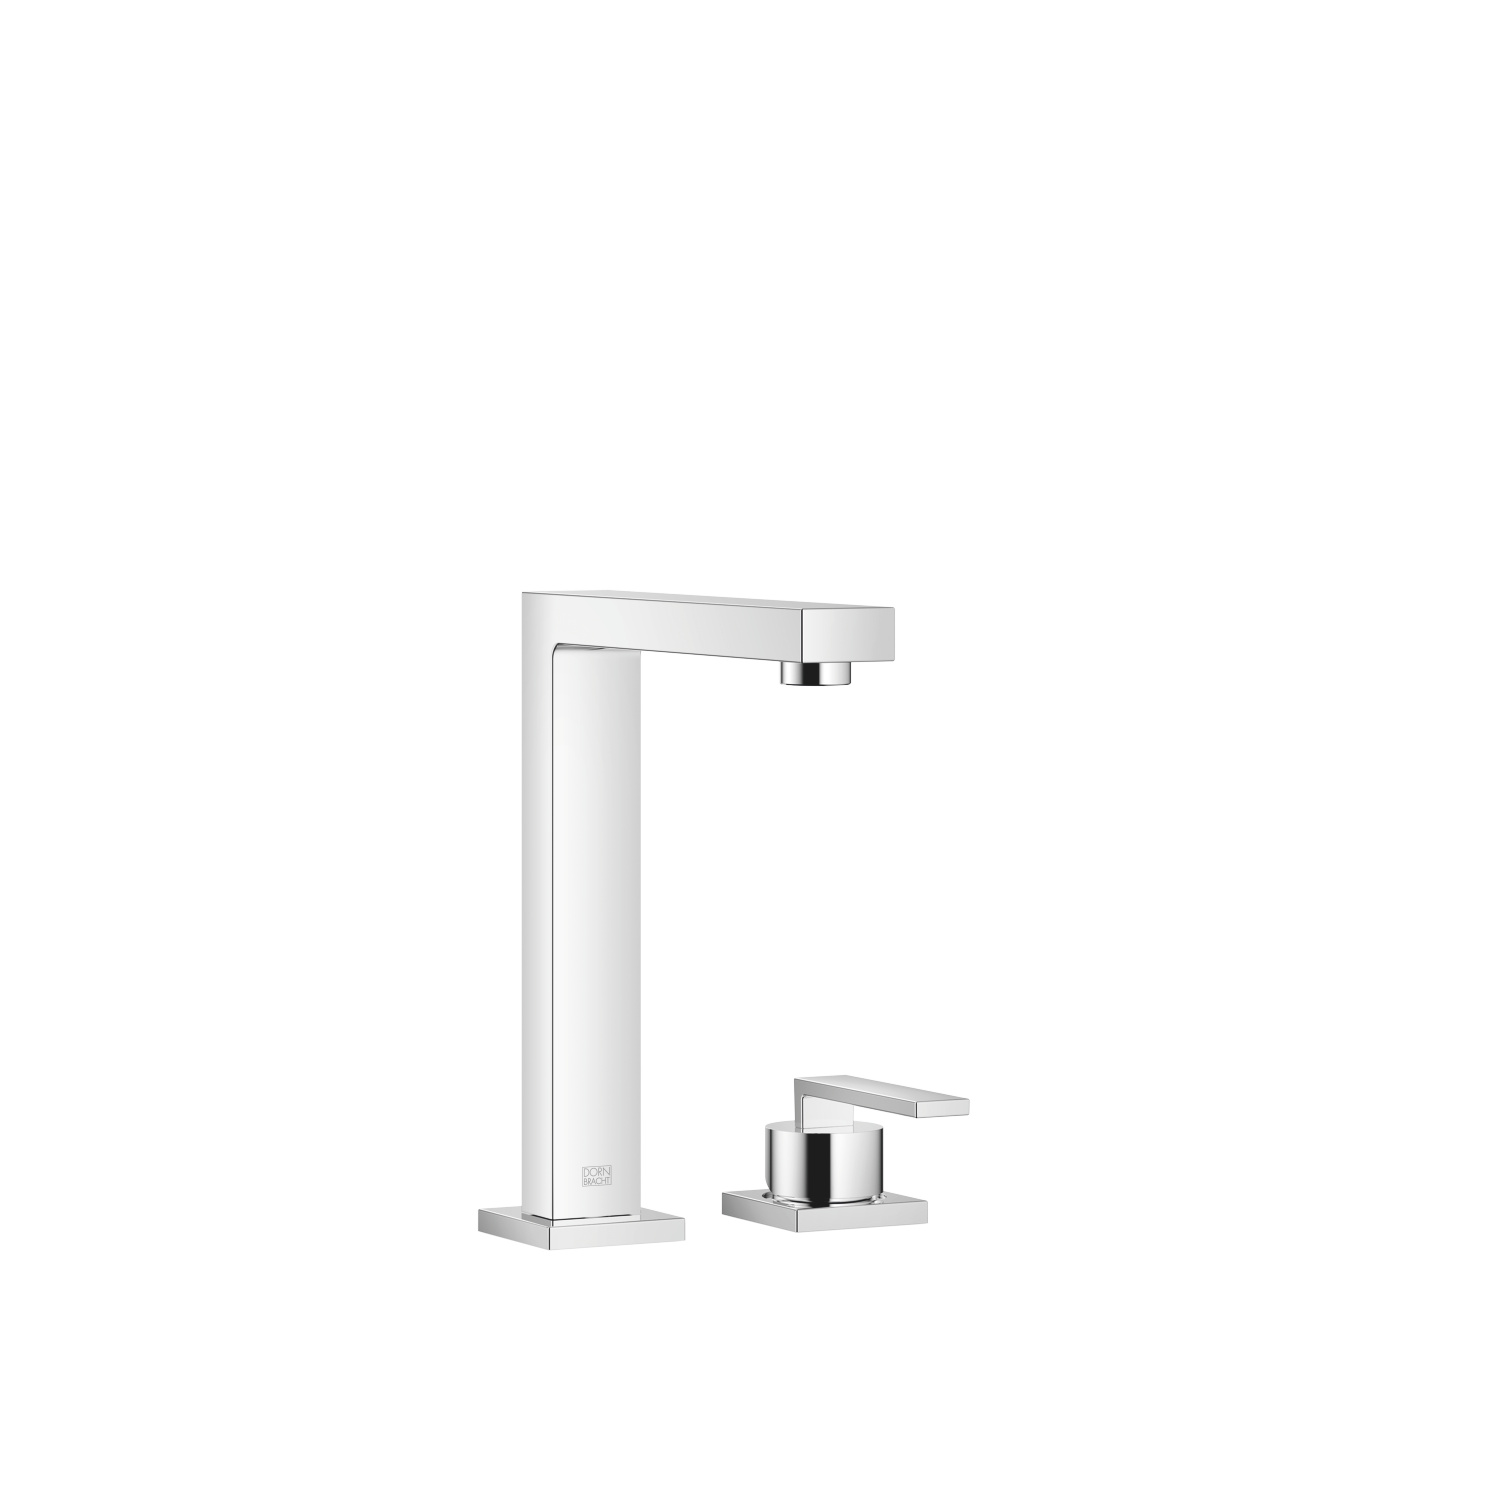 BAR TAP Two-hole mixer with individual rosettes - polished chrome